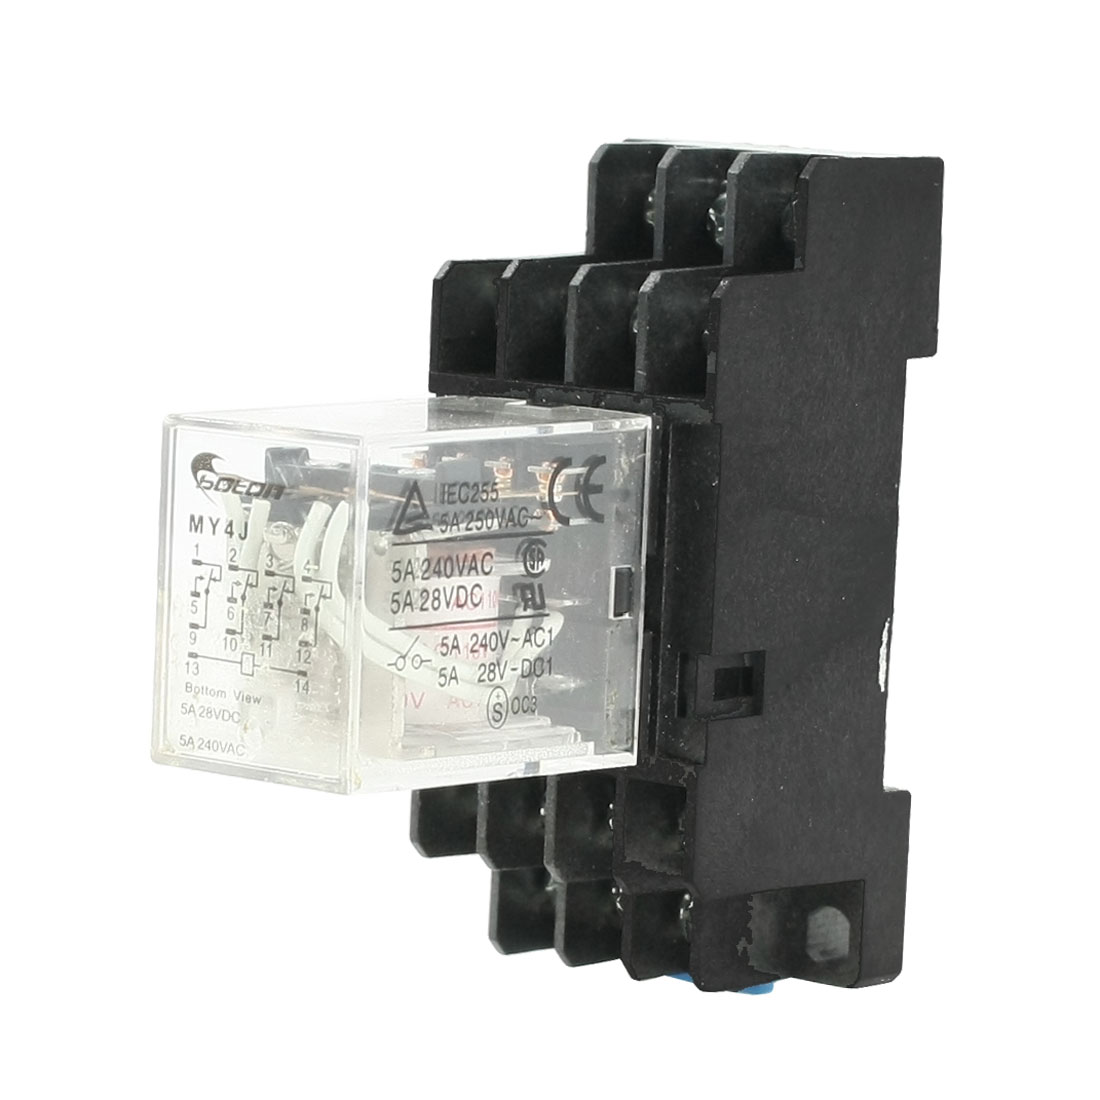 MY4J AC110V Coil 5A 240V AC 28V DC 35mm DIN Rail Power Relay 14 Pin w Socket